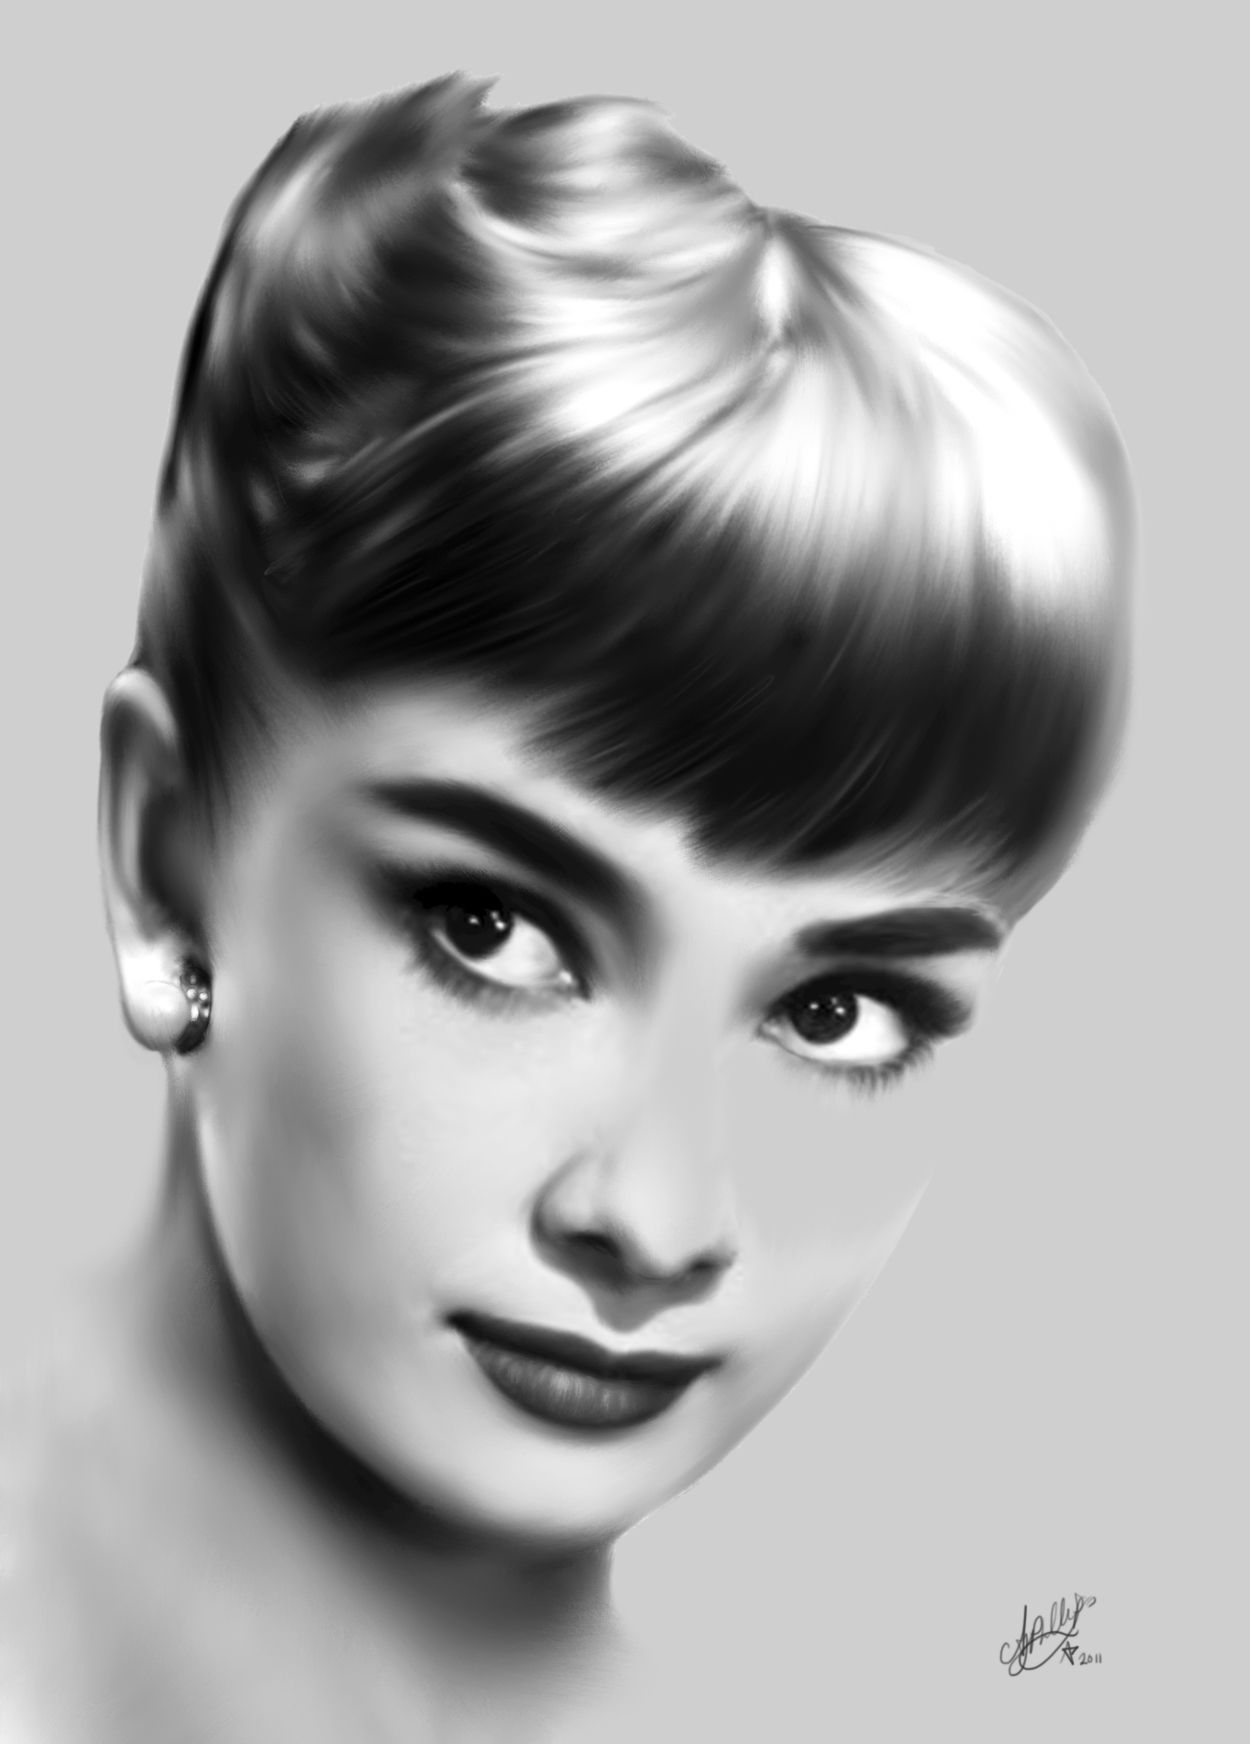 A portrait i did of audrey hepburn in pencil graphite and white pastel